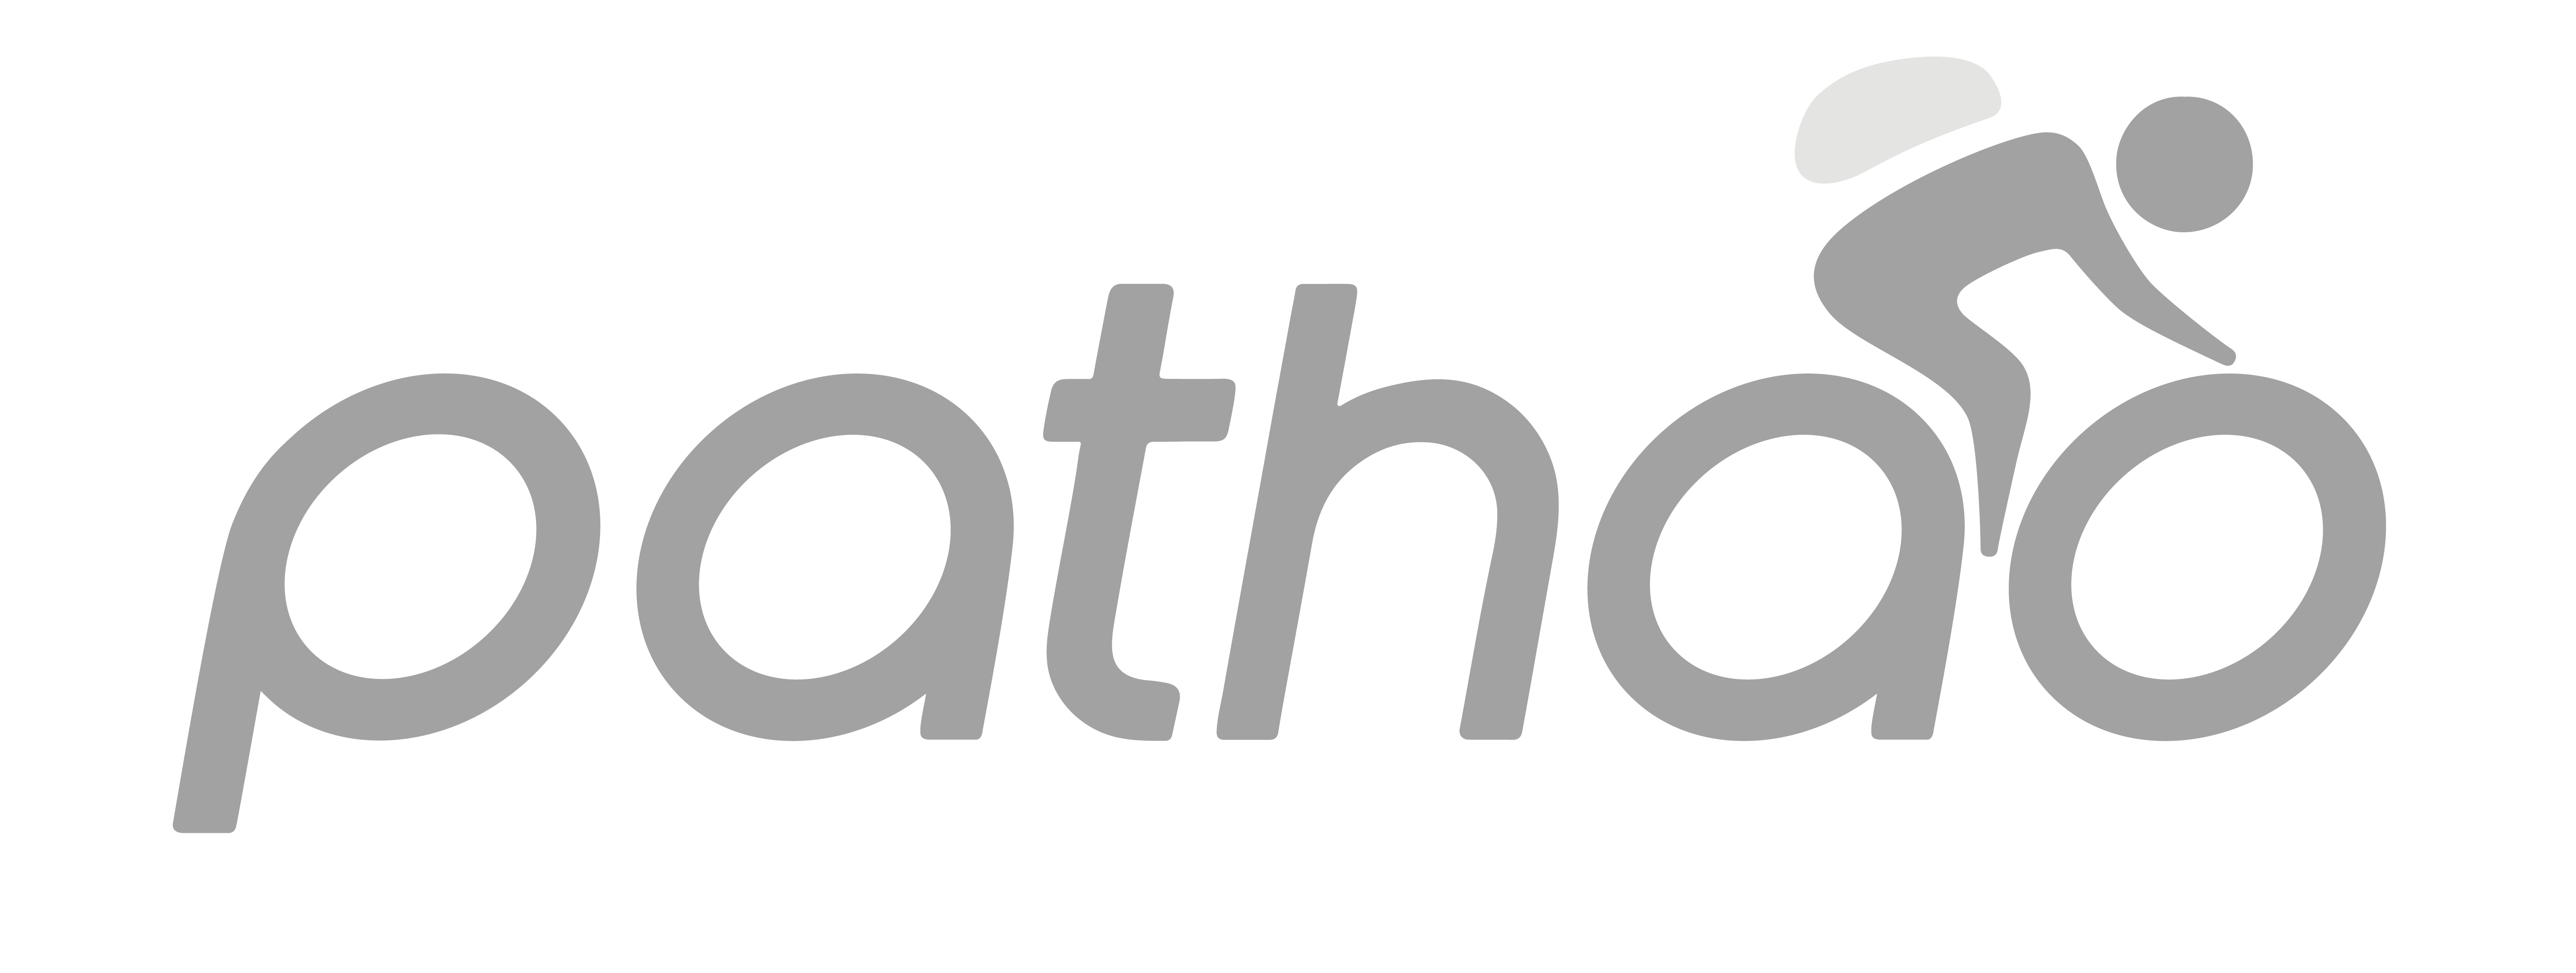 Pathao logo in grey